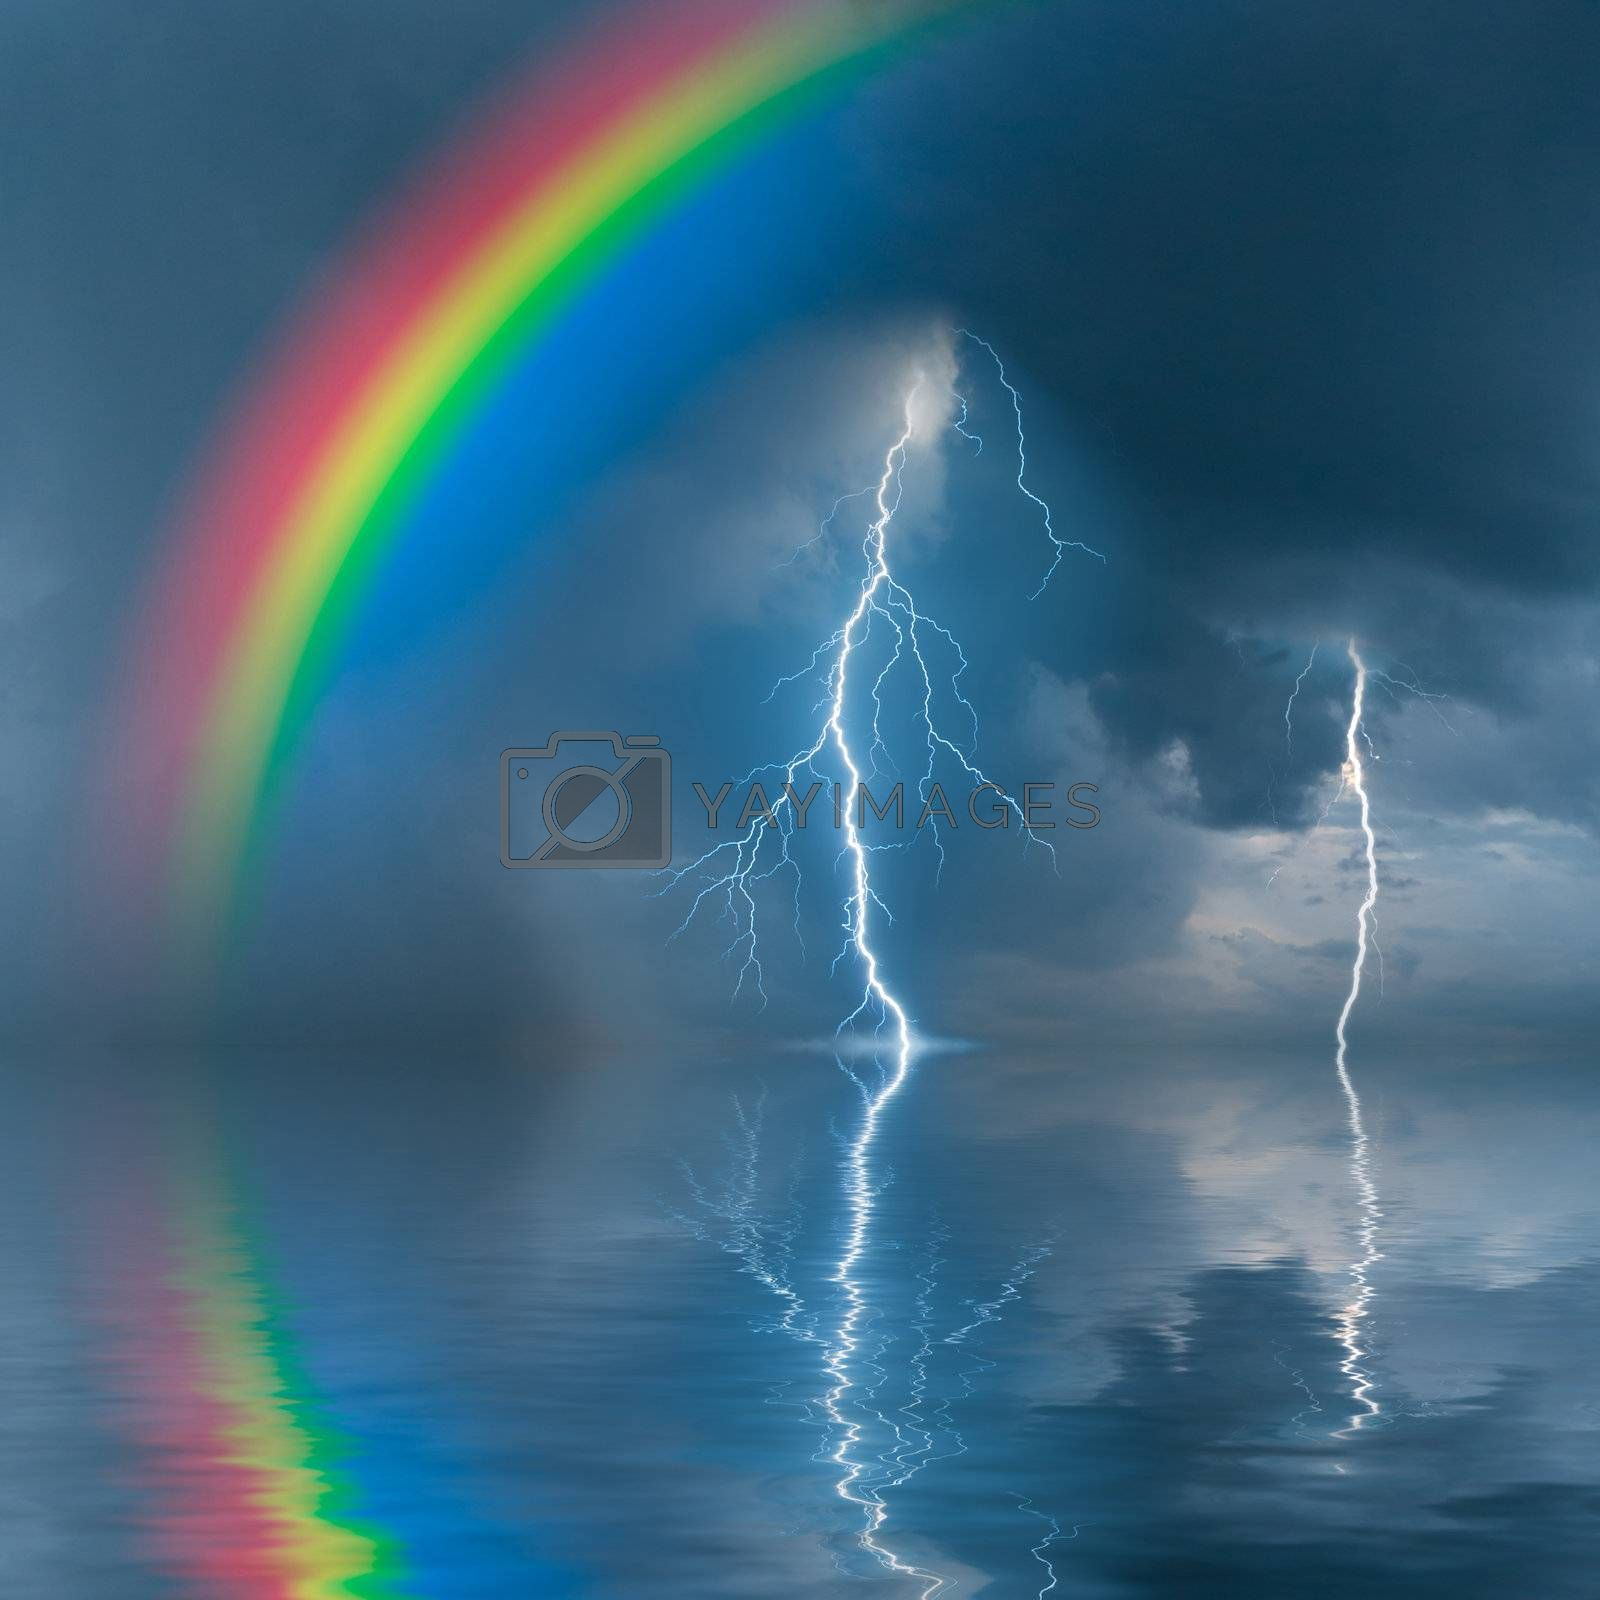 Colorful rainbow over water, thunderstorm with rain and lightning on background